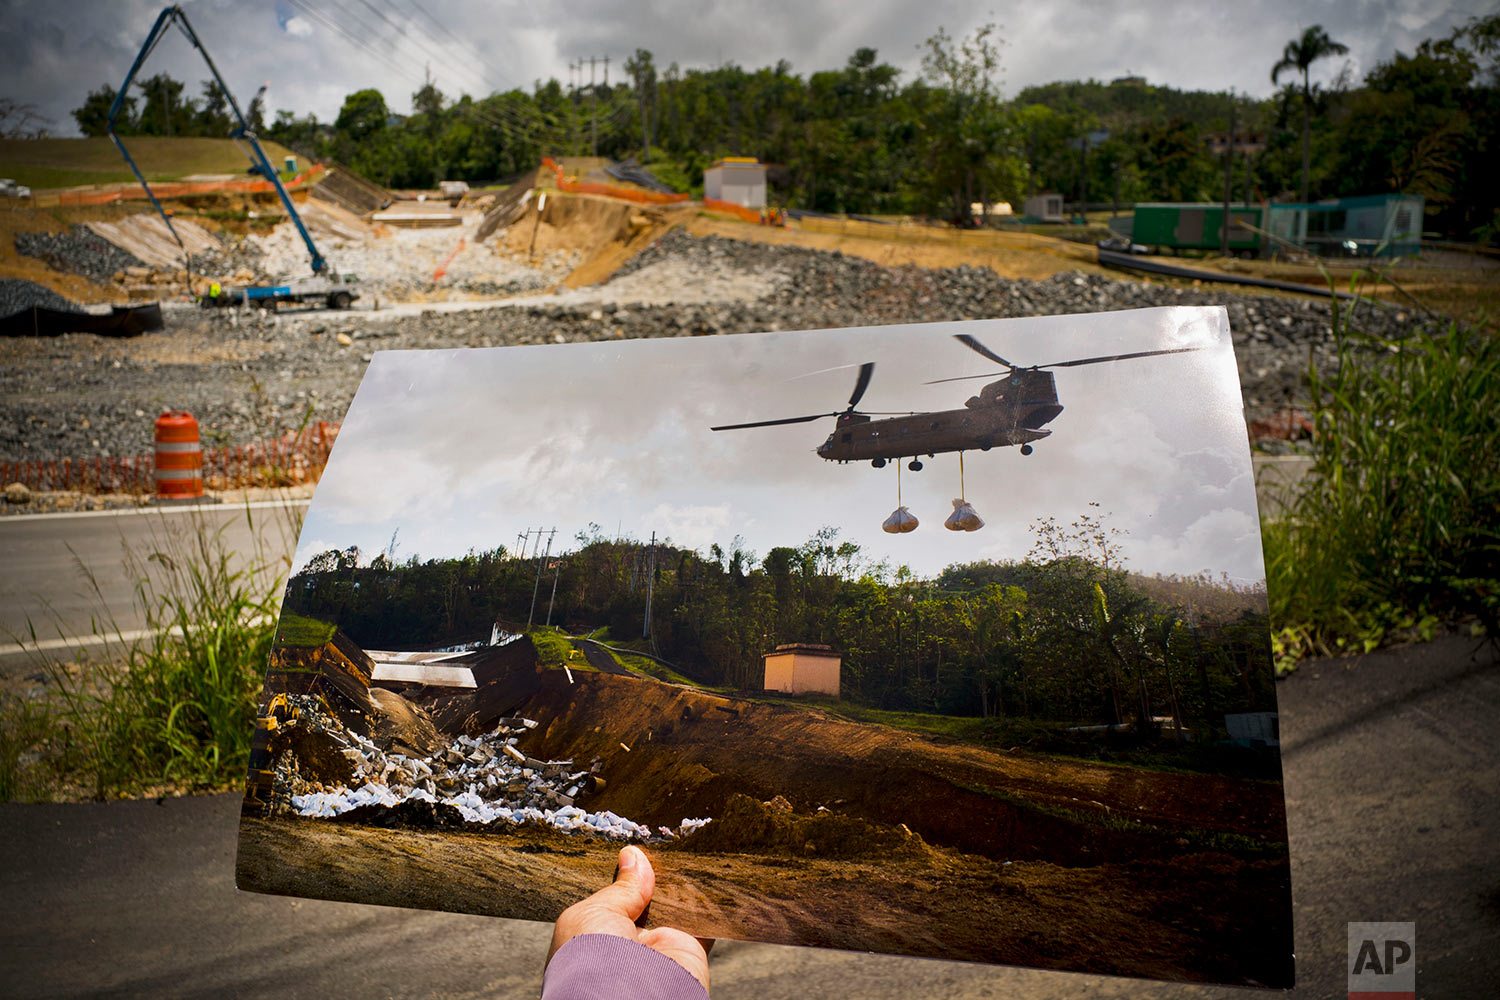 A printed photo taken on Oct. 17, 2017 showing a U.S. army helicopter transporting material to repair the Guajataca Dam, in Quebradillas, Puerto Rico, May 31, 2018. (AP Photo/Ramon Espinosa)